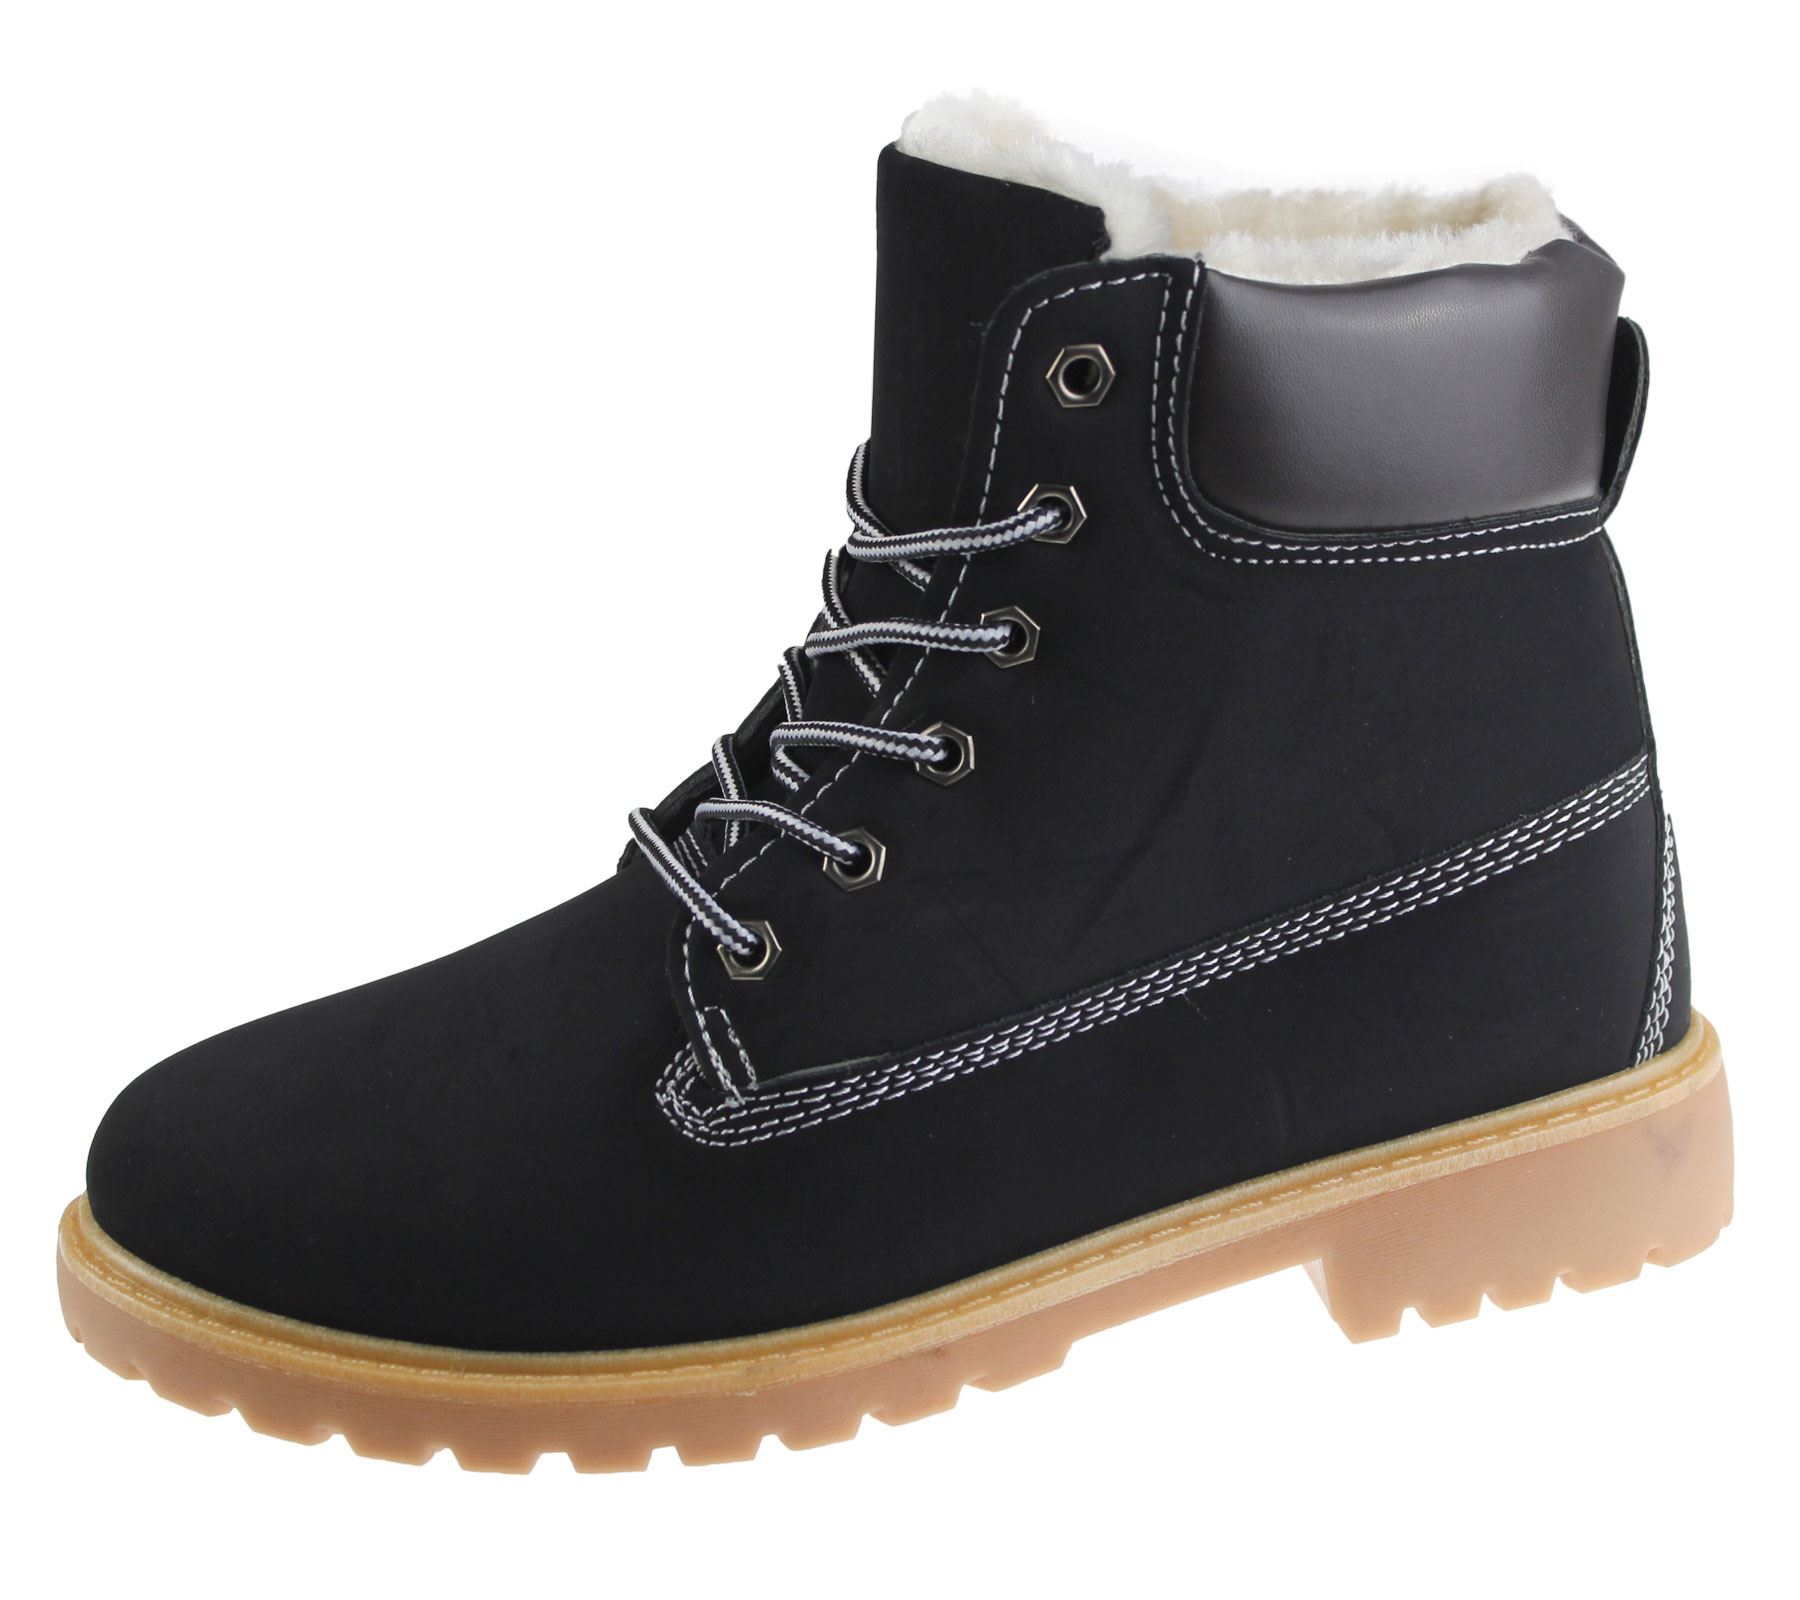 Luxury Winter Work Boots For Womenwinter Work Boots For Salewinter Work Boots Men Widewinter Work Boots ...